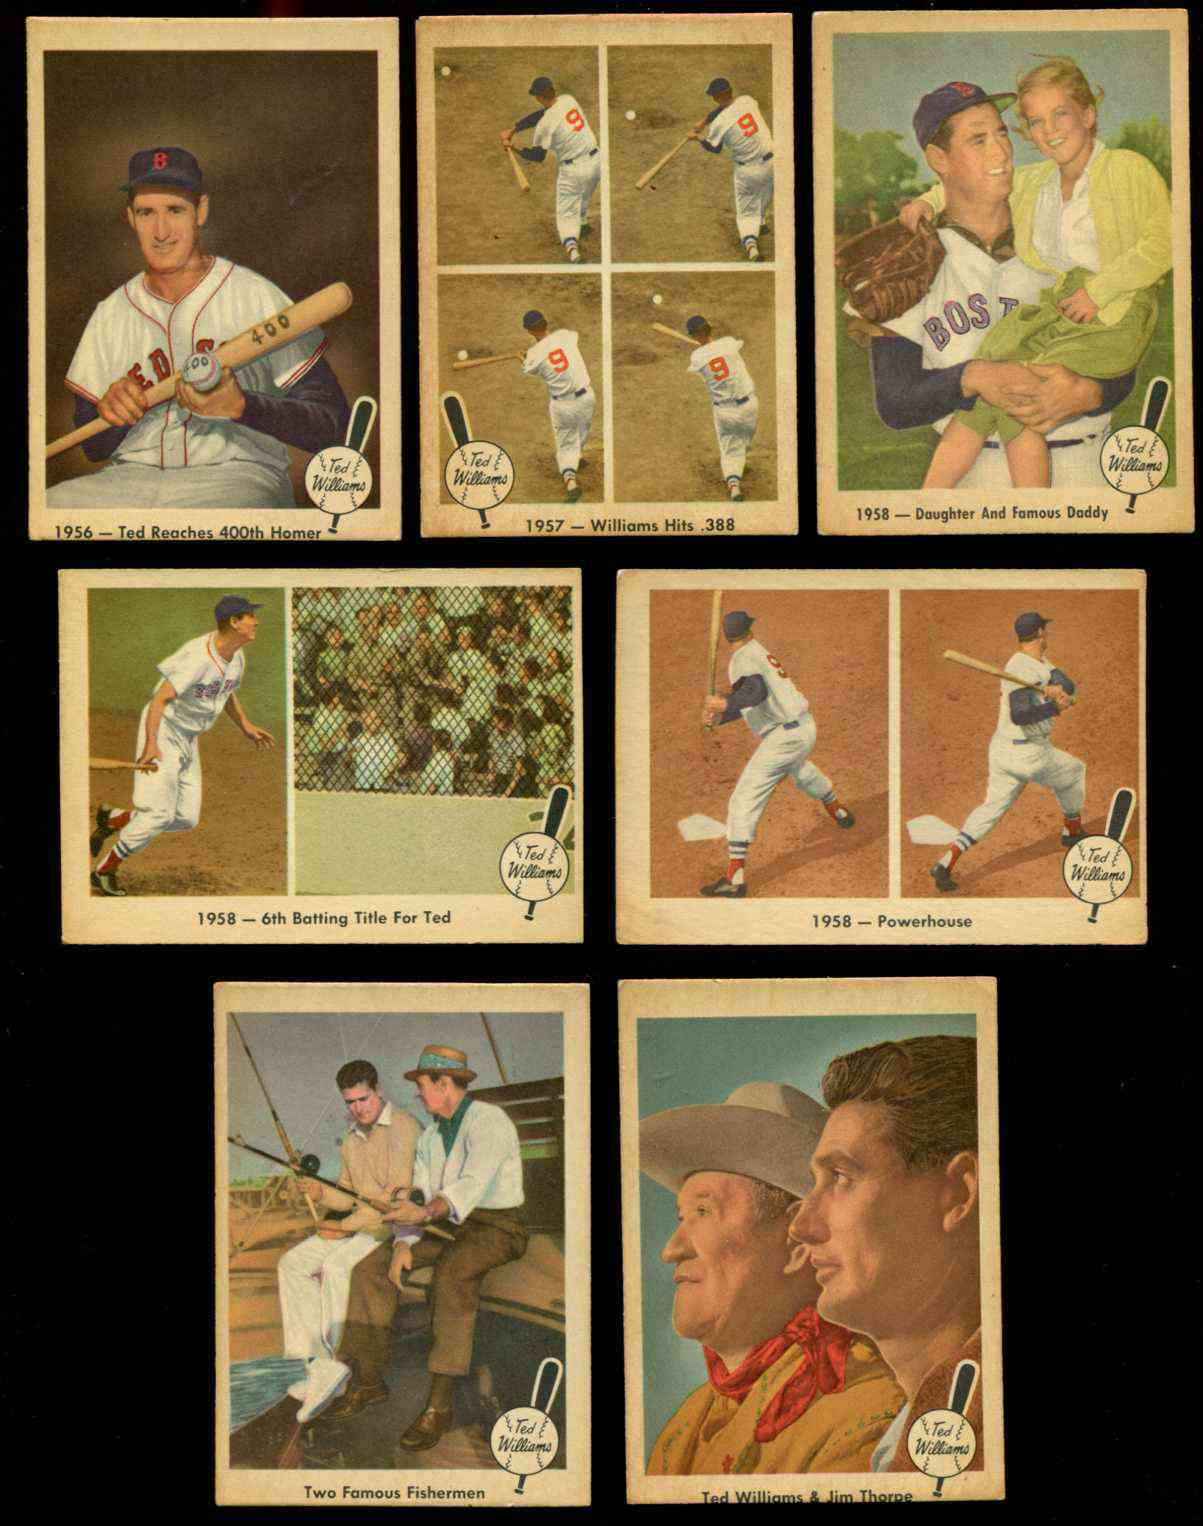 1959 Fleer Ted Williams #67 w/Sam Snead 'Two Famous Fishermen' [#x] Baseball cards value